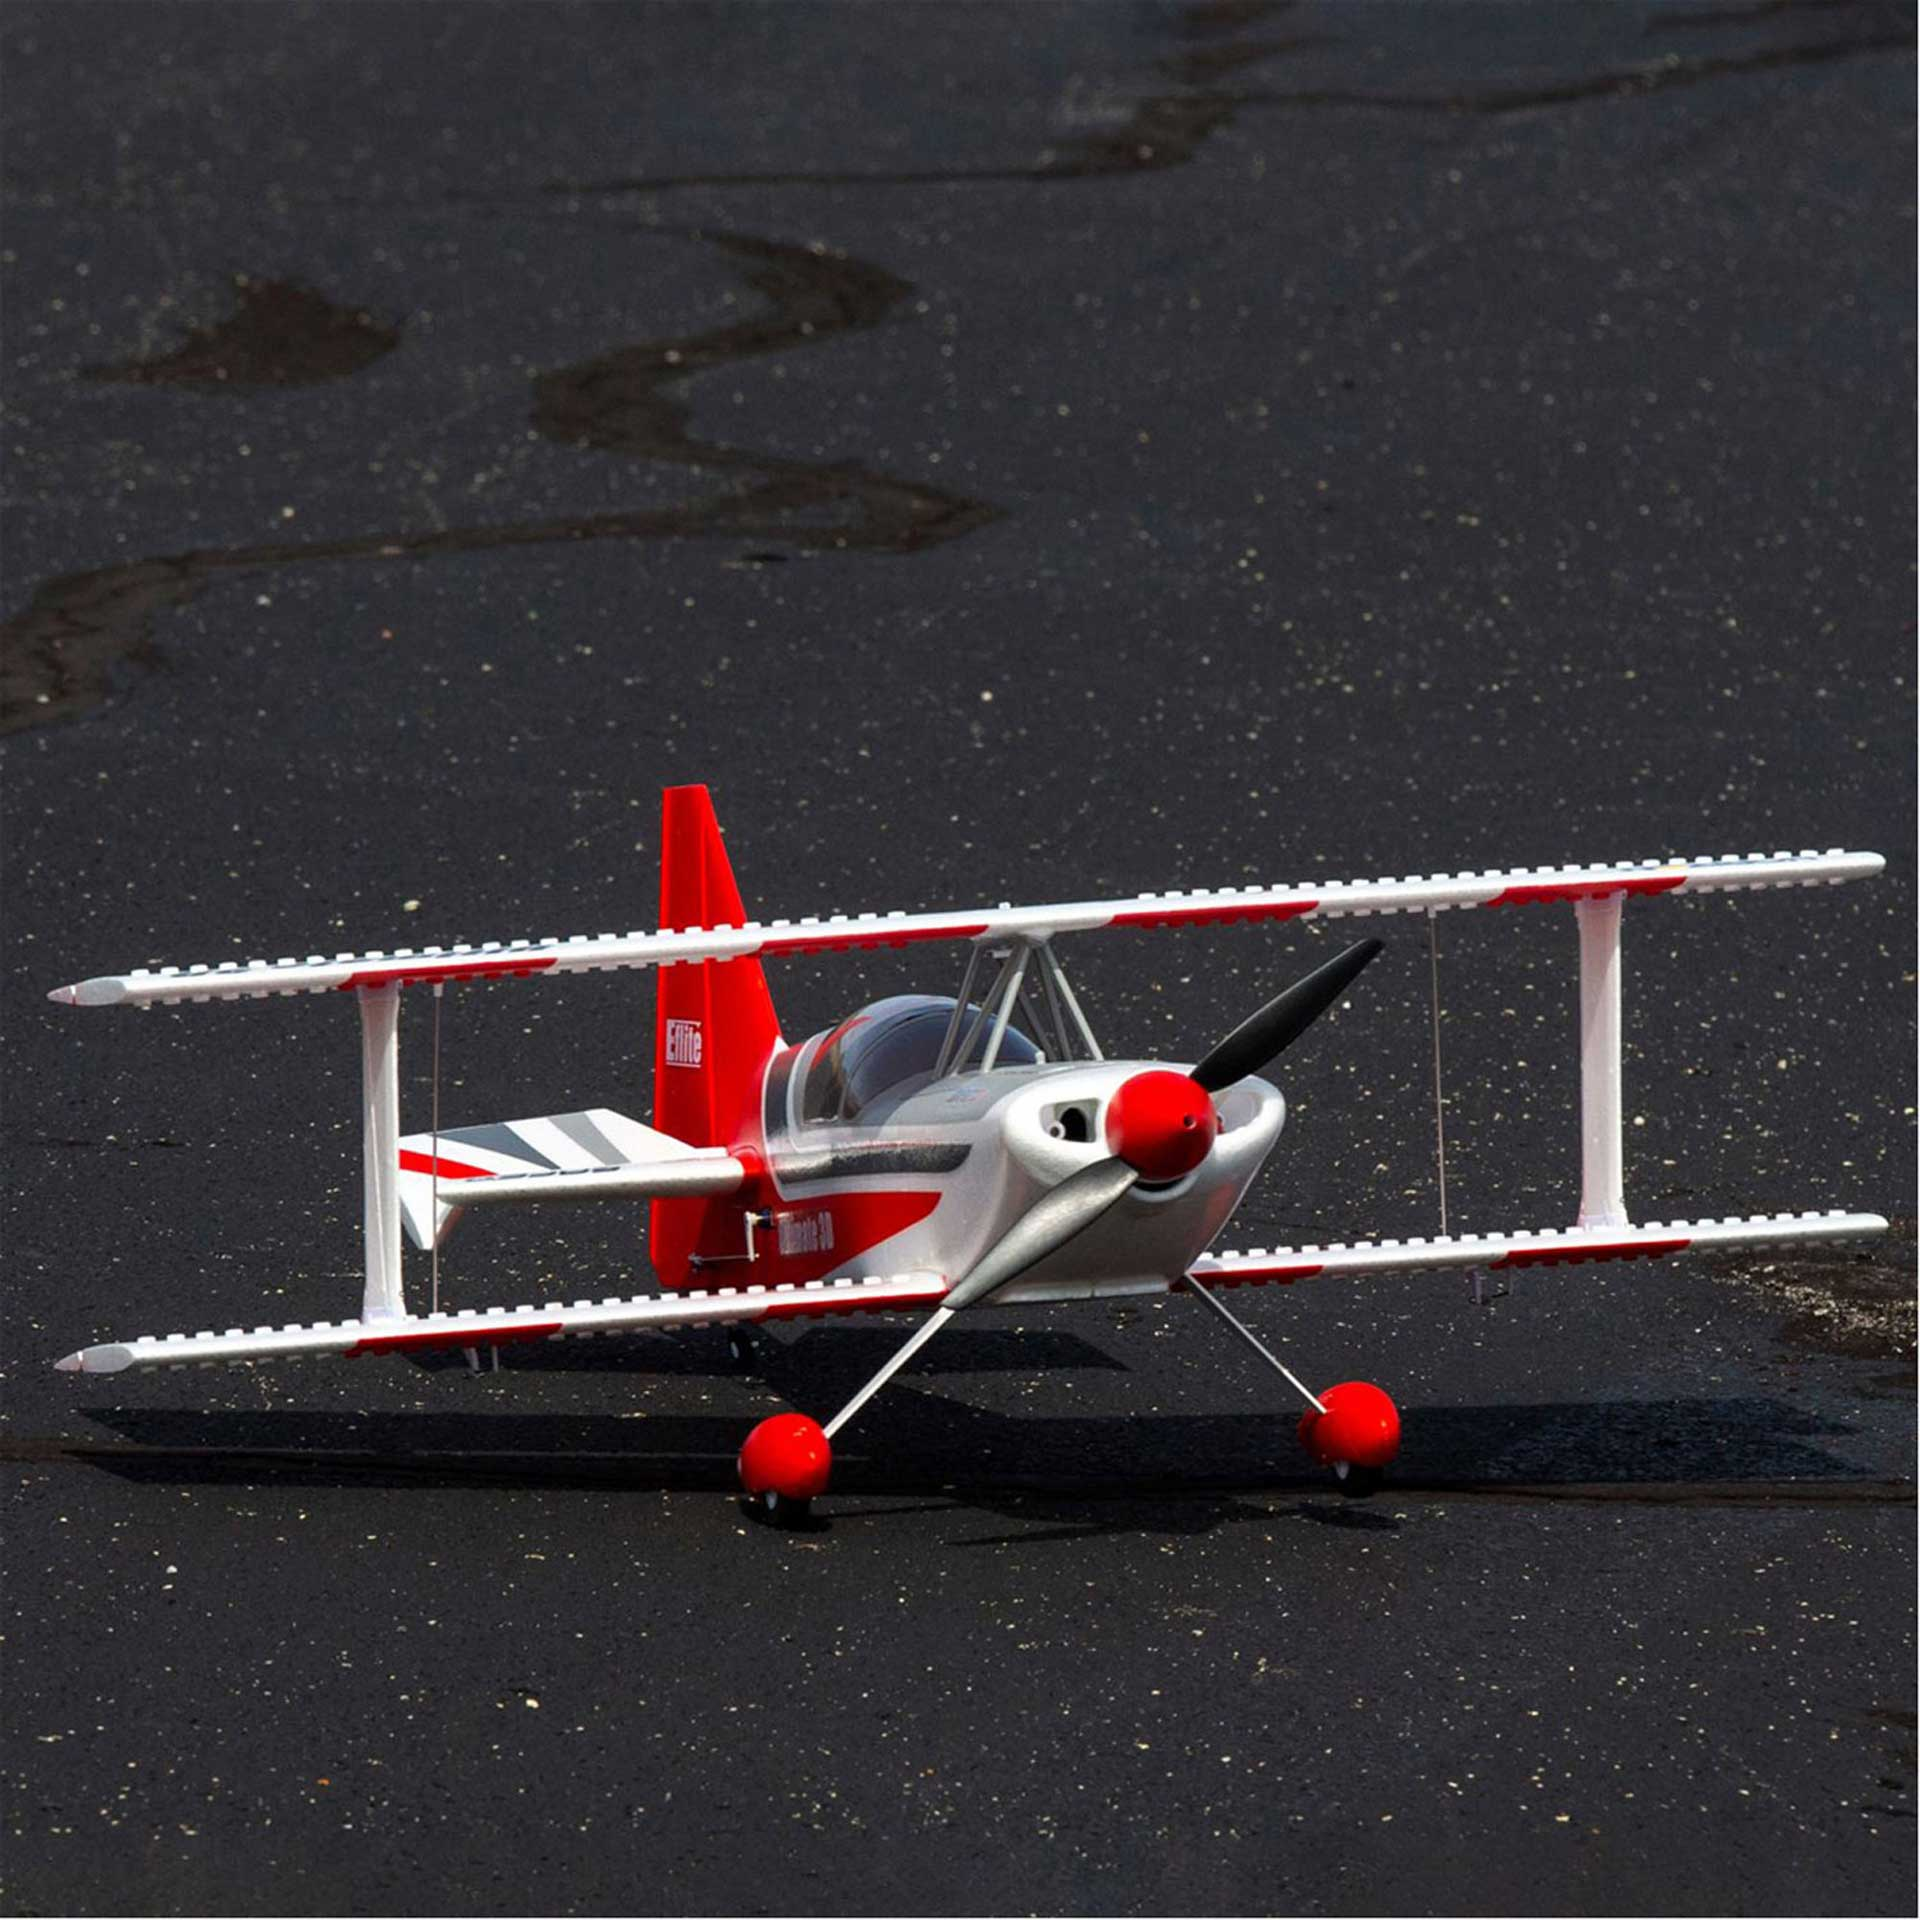 E-Flite ULTIMATE 3D 950mm with Smart BNF Basic AS3X and safe